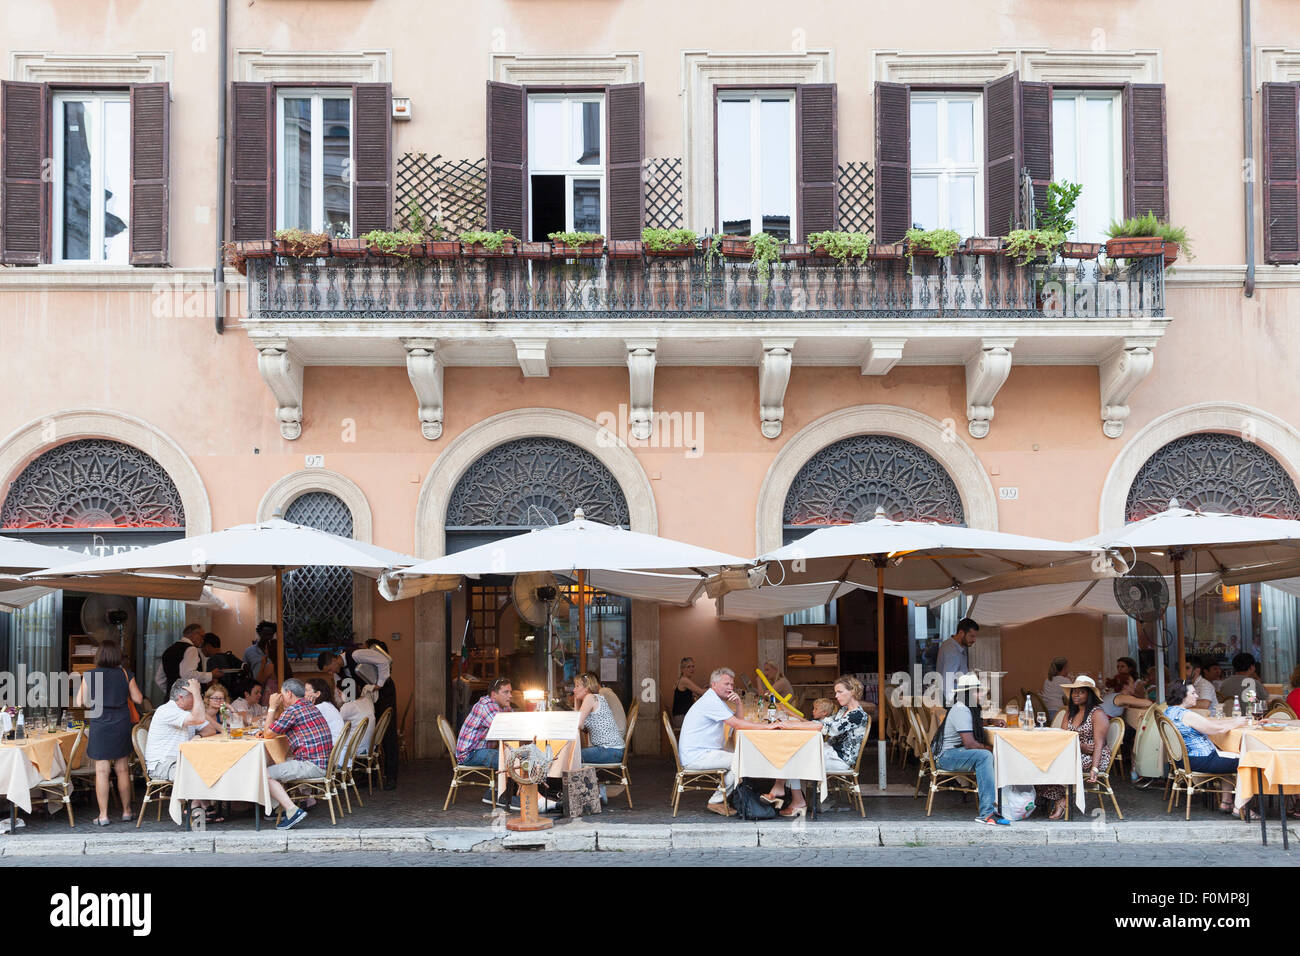 Diners at a restaurant in Piazza Navona, Rome, Italy - Stock Image